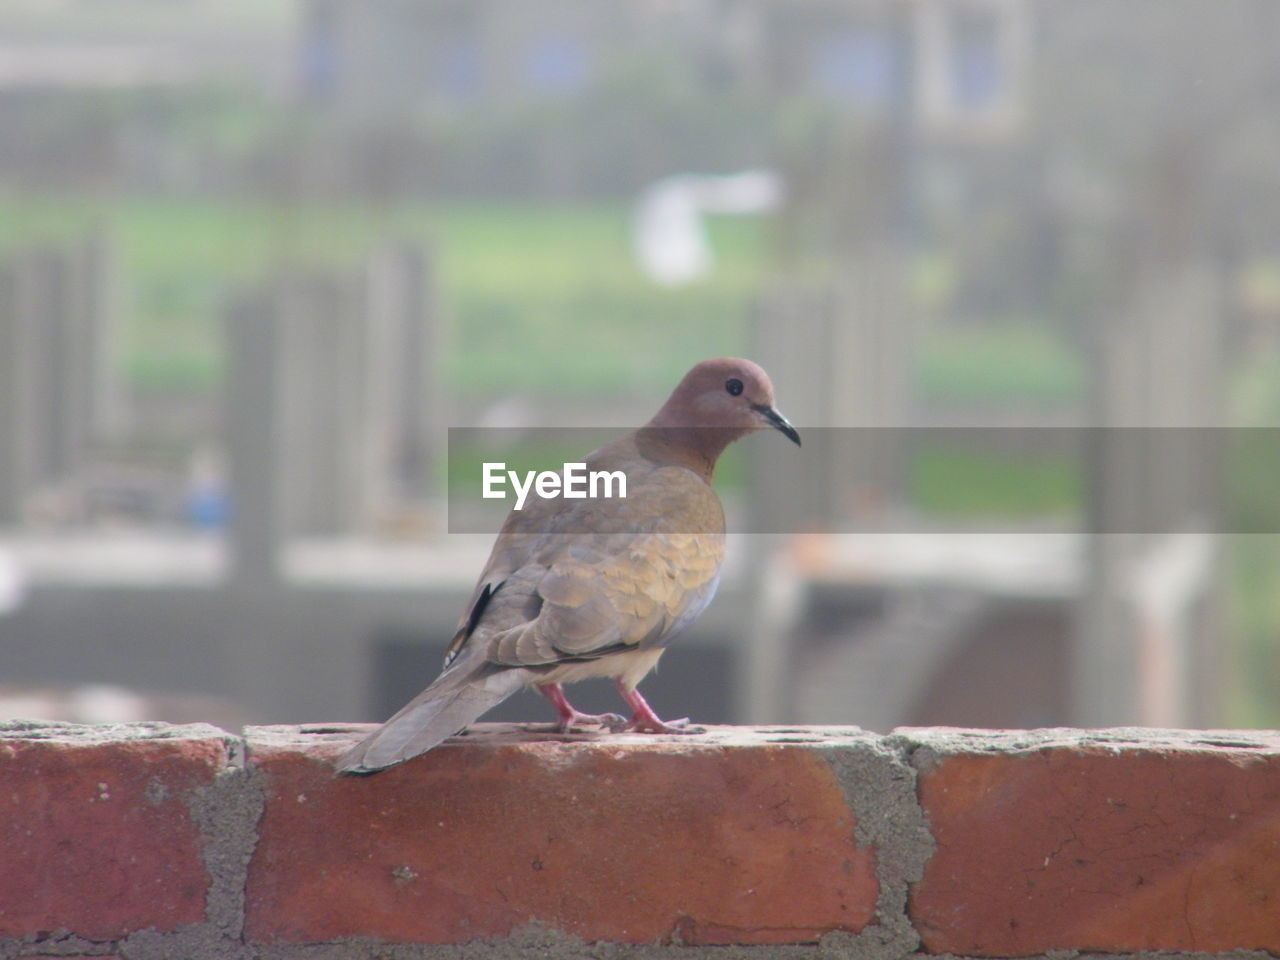 animal themes, animal, bird, animals in the wild, animal wildlife, vertebrate, perching, one animal, wall, day, focus on foreground, no people, mourning dove, retaining wall, dove - bird, outdoors, architecture, close-up, side view, nature